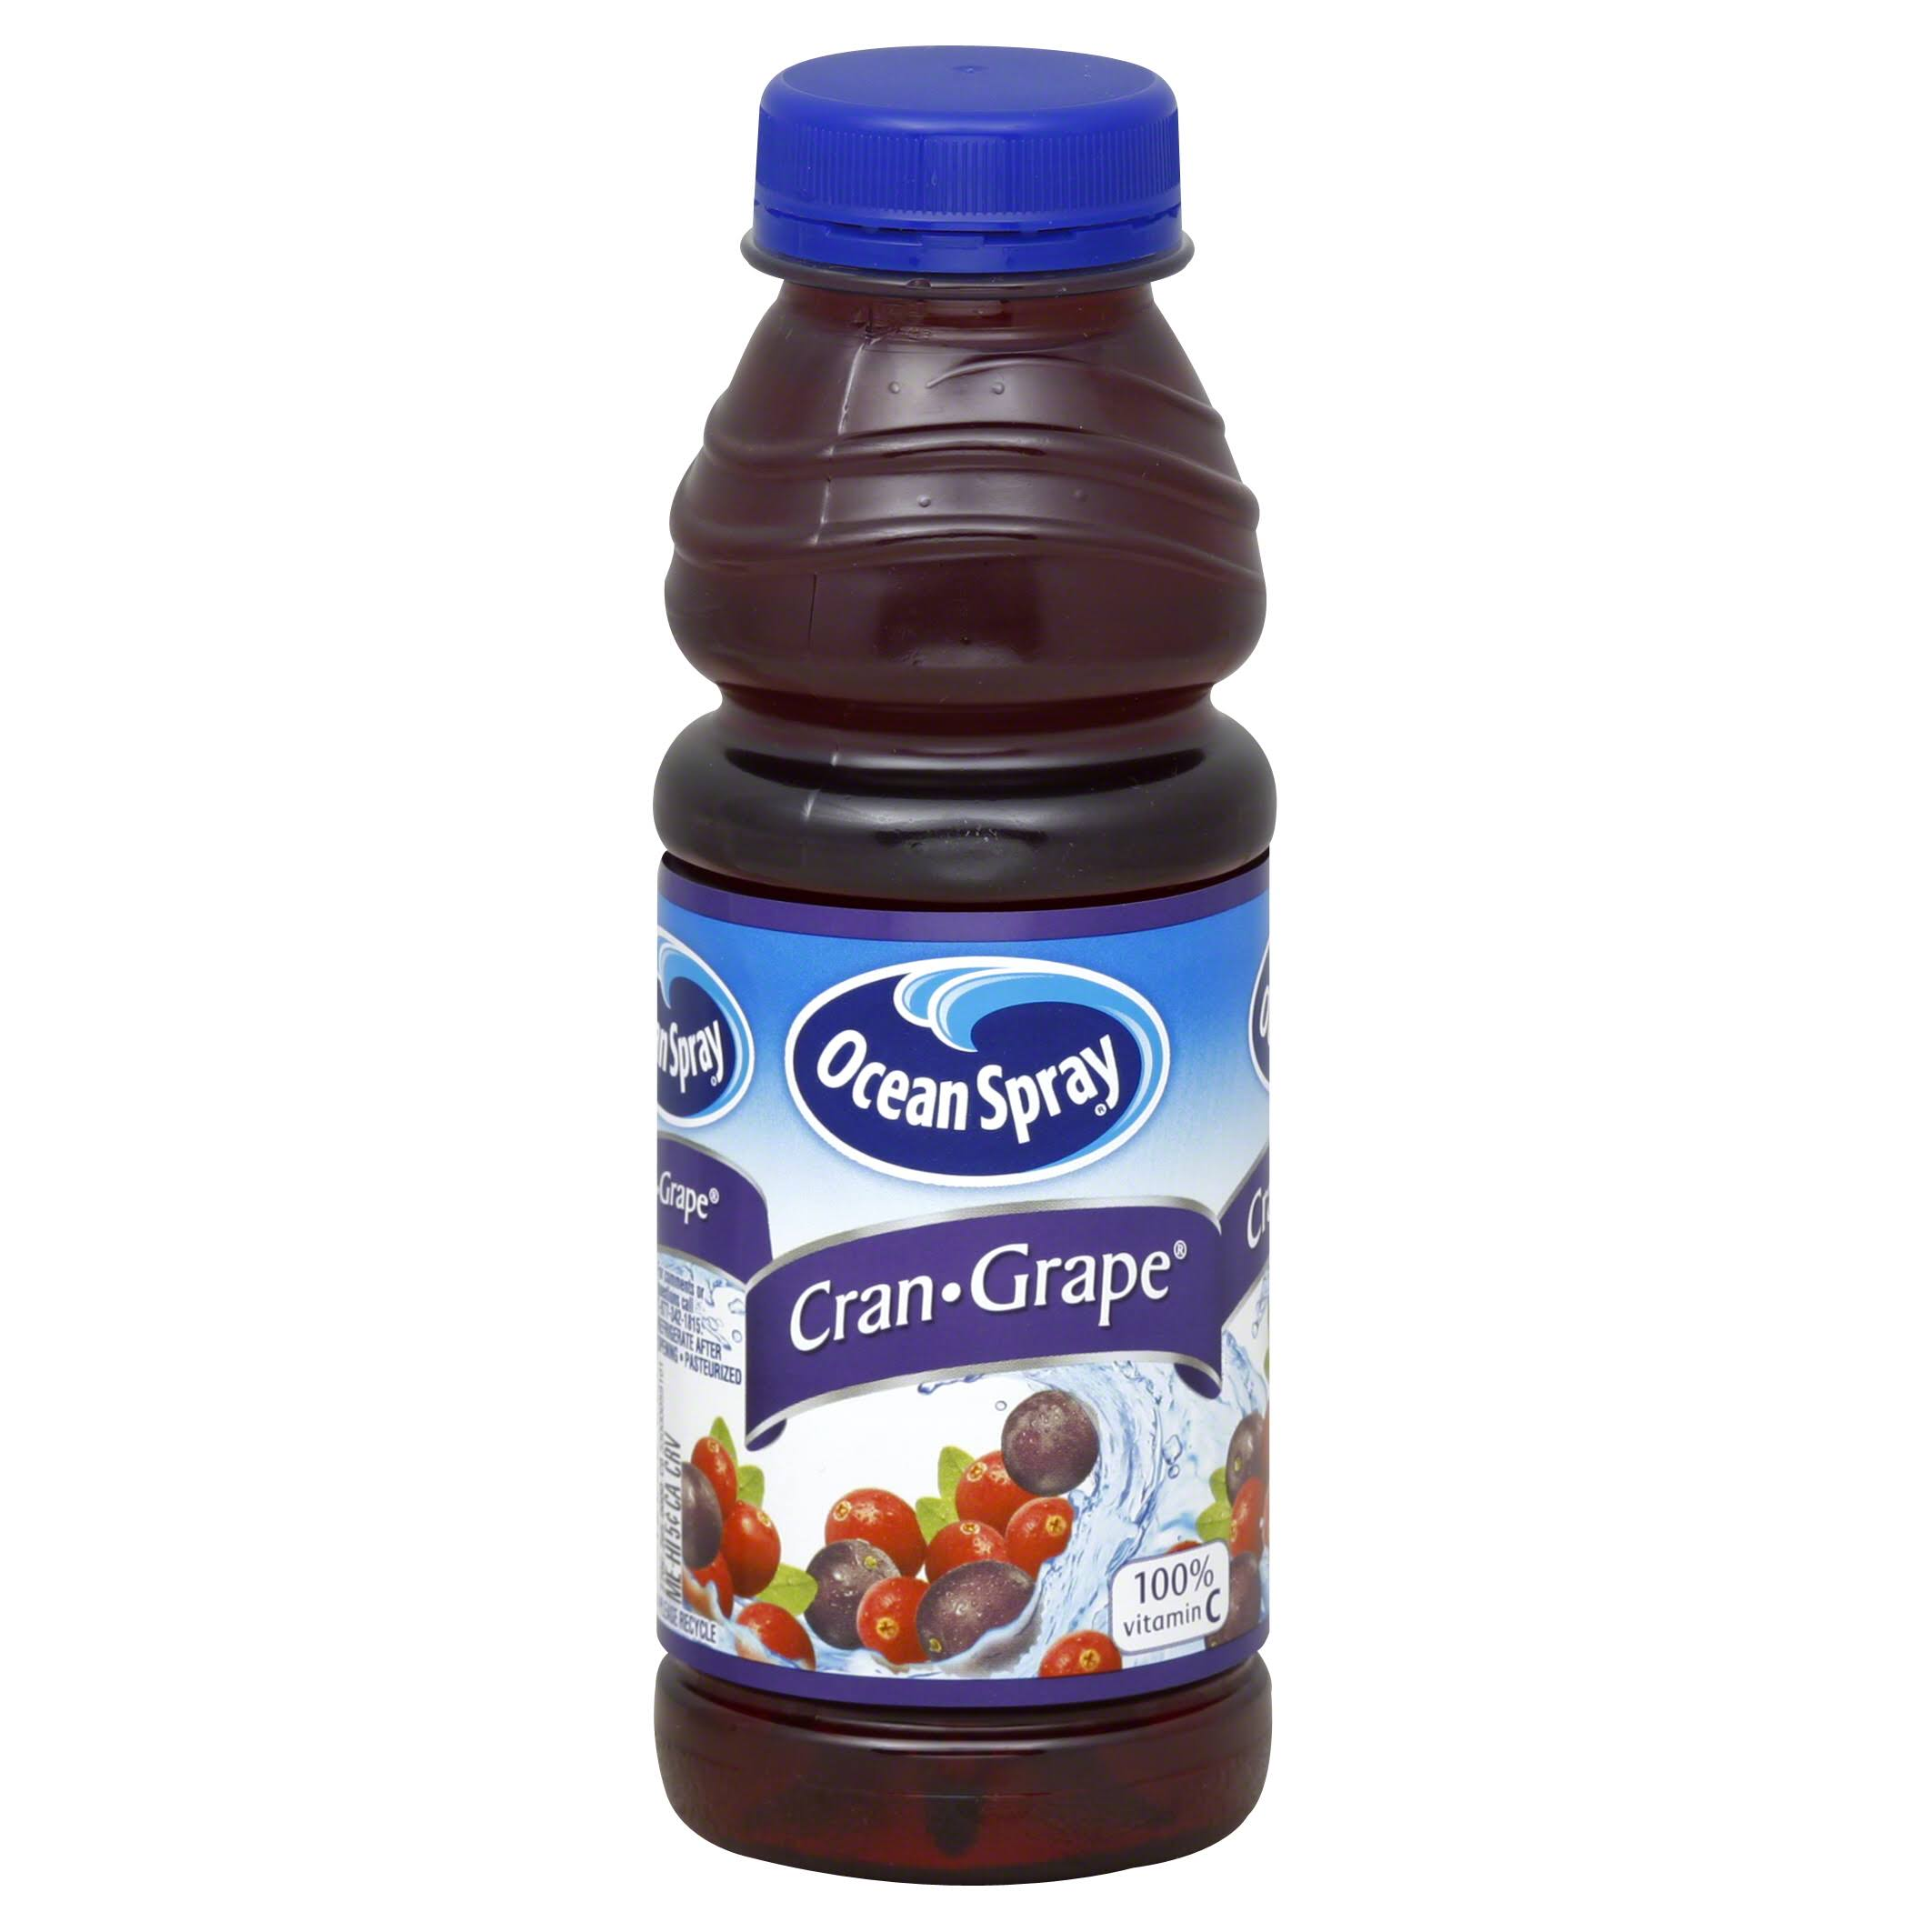 Ocean Spray Juice Cocktail, Cran-Grape - 15.2 fl oz